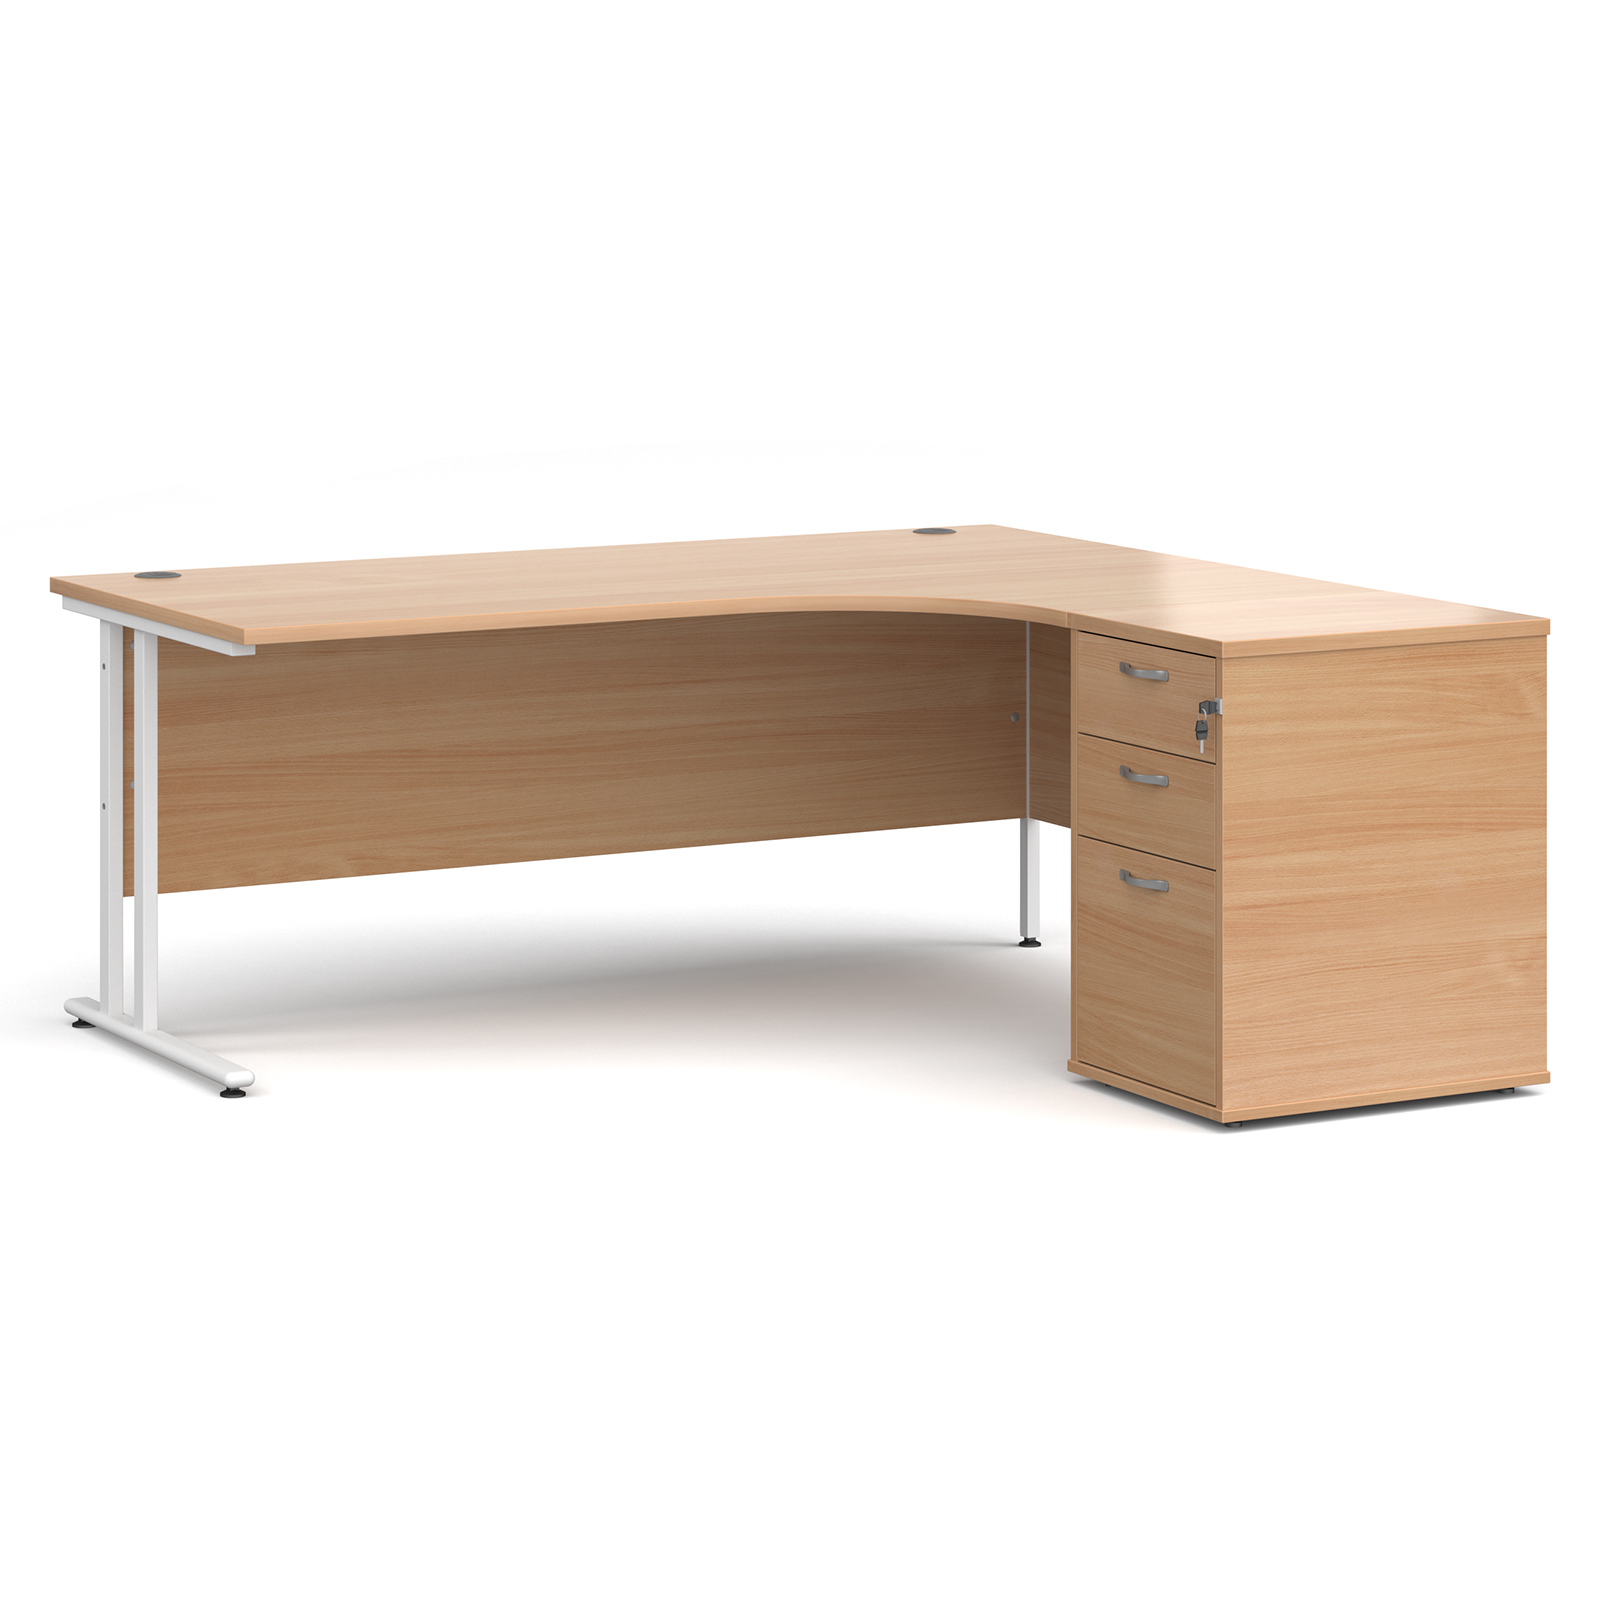 Right Handed Maestro 25 right hand ergonomic desk 1800mm with white cantilever frame and desk high pedestal - beech